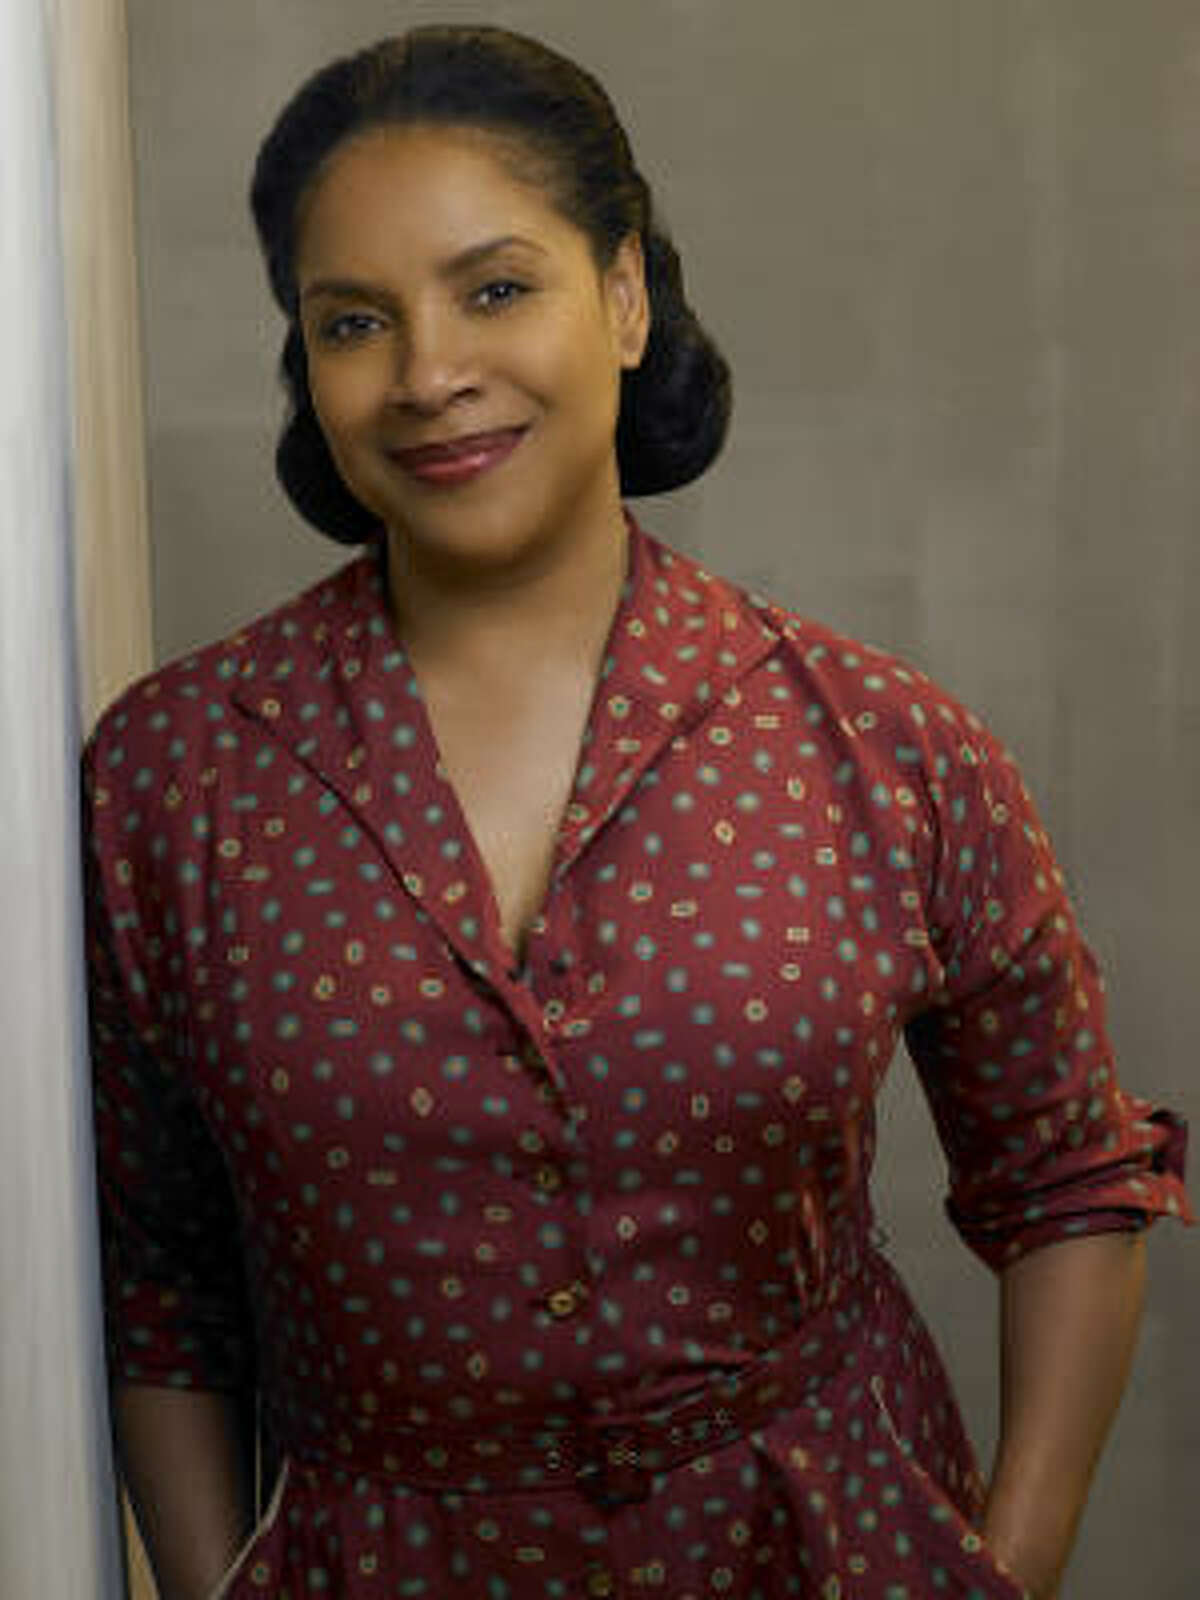 Actress Phylicia Rashad recently signed on as a spokesperson for Jenny Craig.